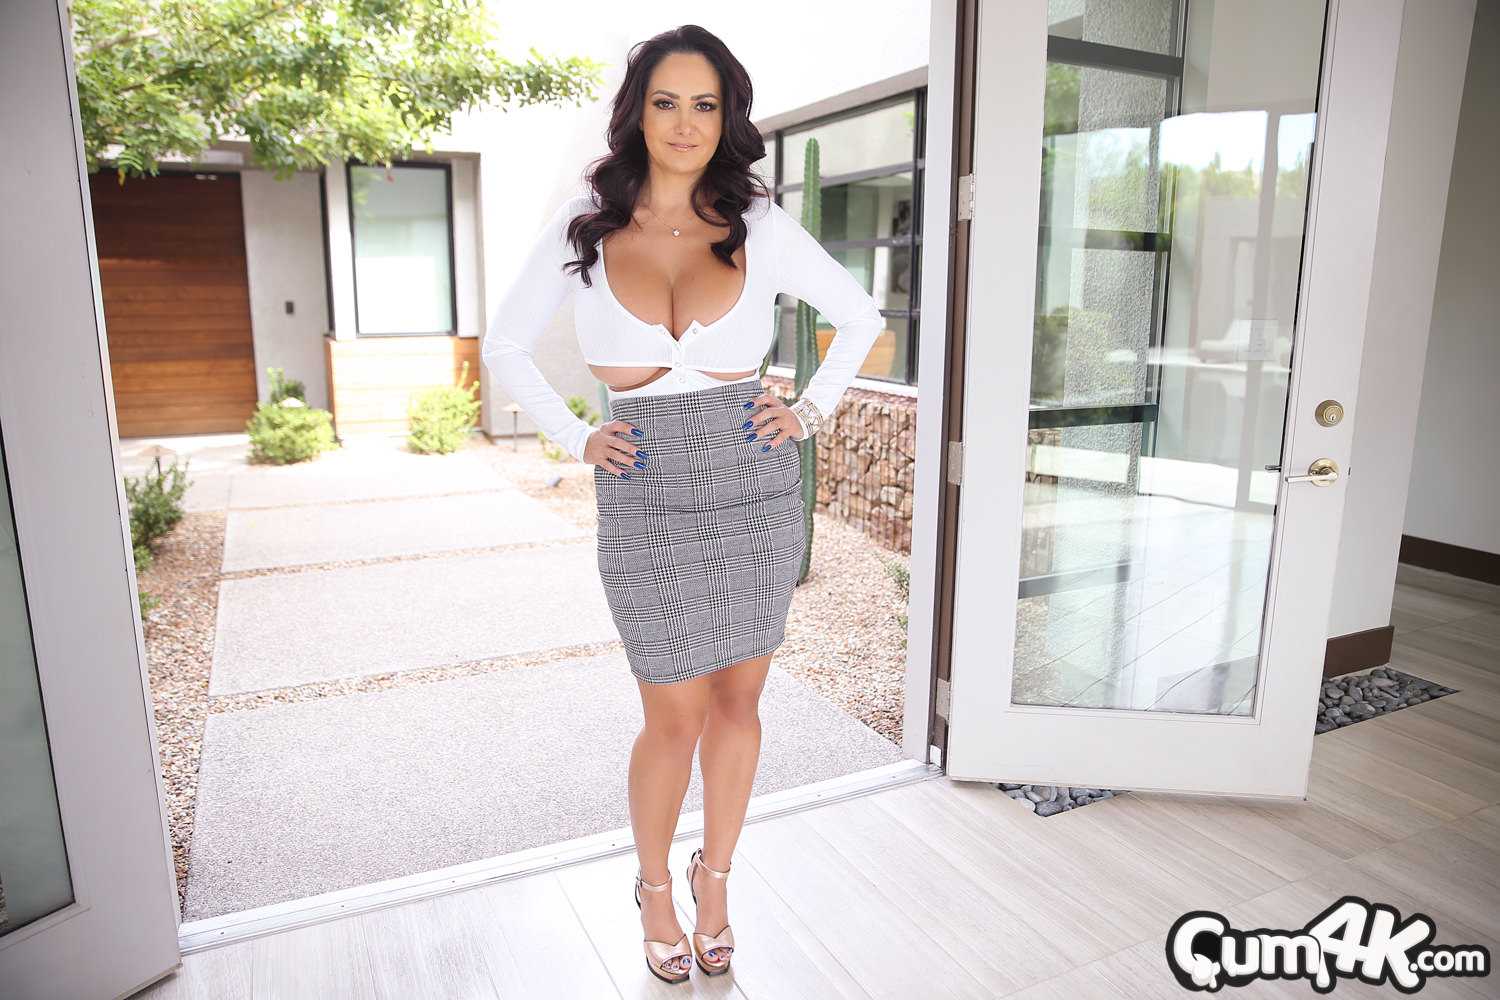 Cum4k: Ava Addams - Finish The Deal